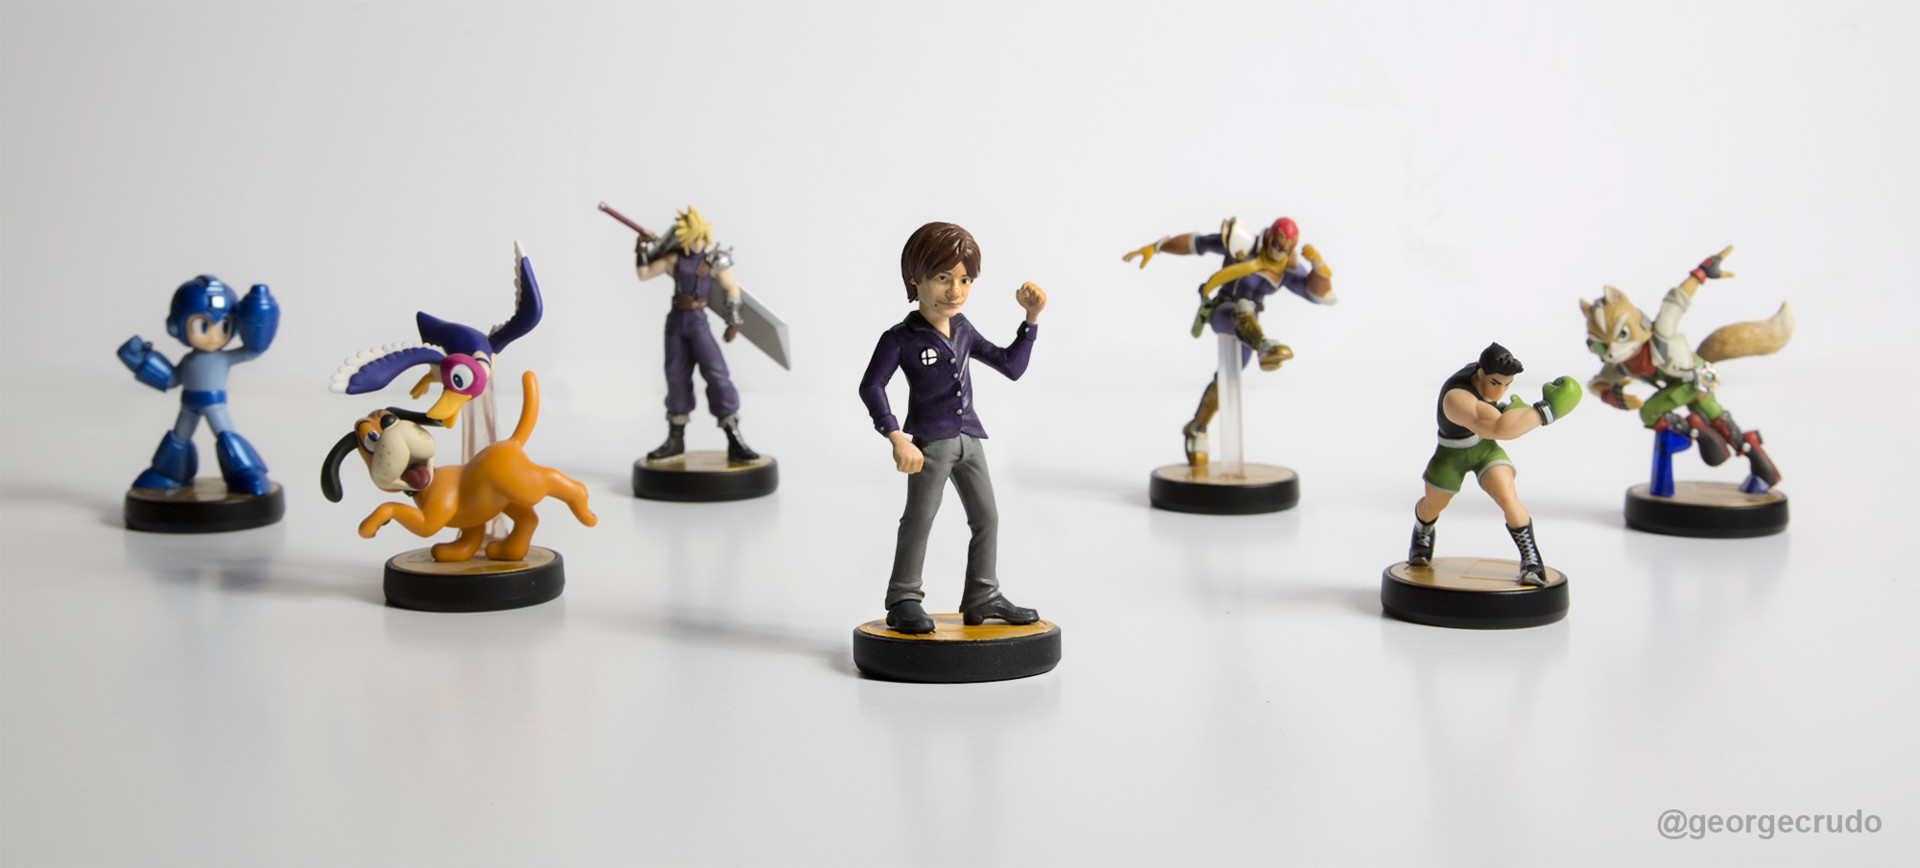 George crudo sakurai ultimate amiibo group